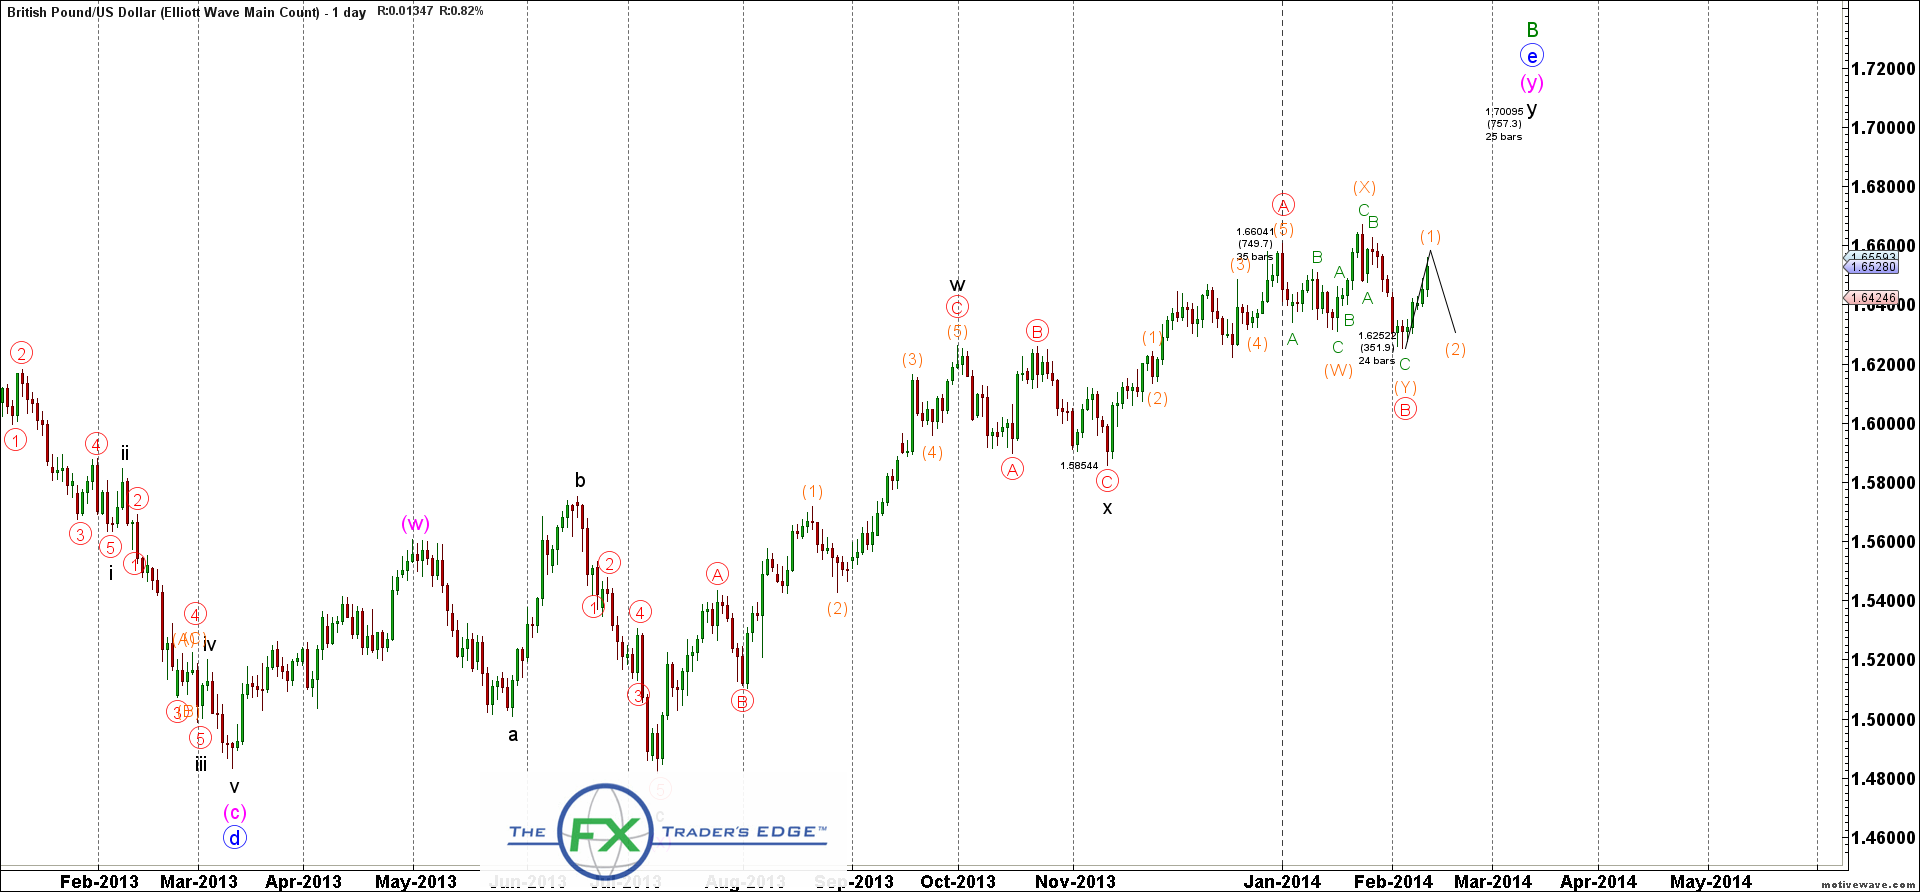 GBPUSD-Elliott-Wave-Main-Count-Feb-12-0827-AM-1-day